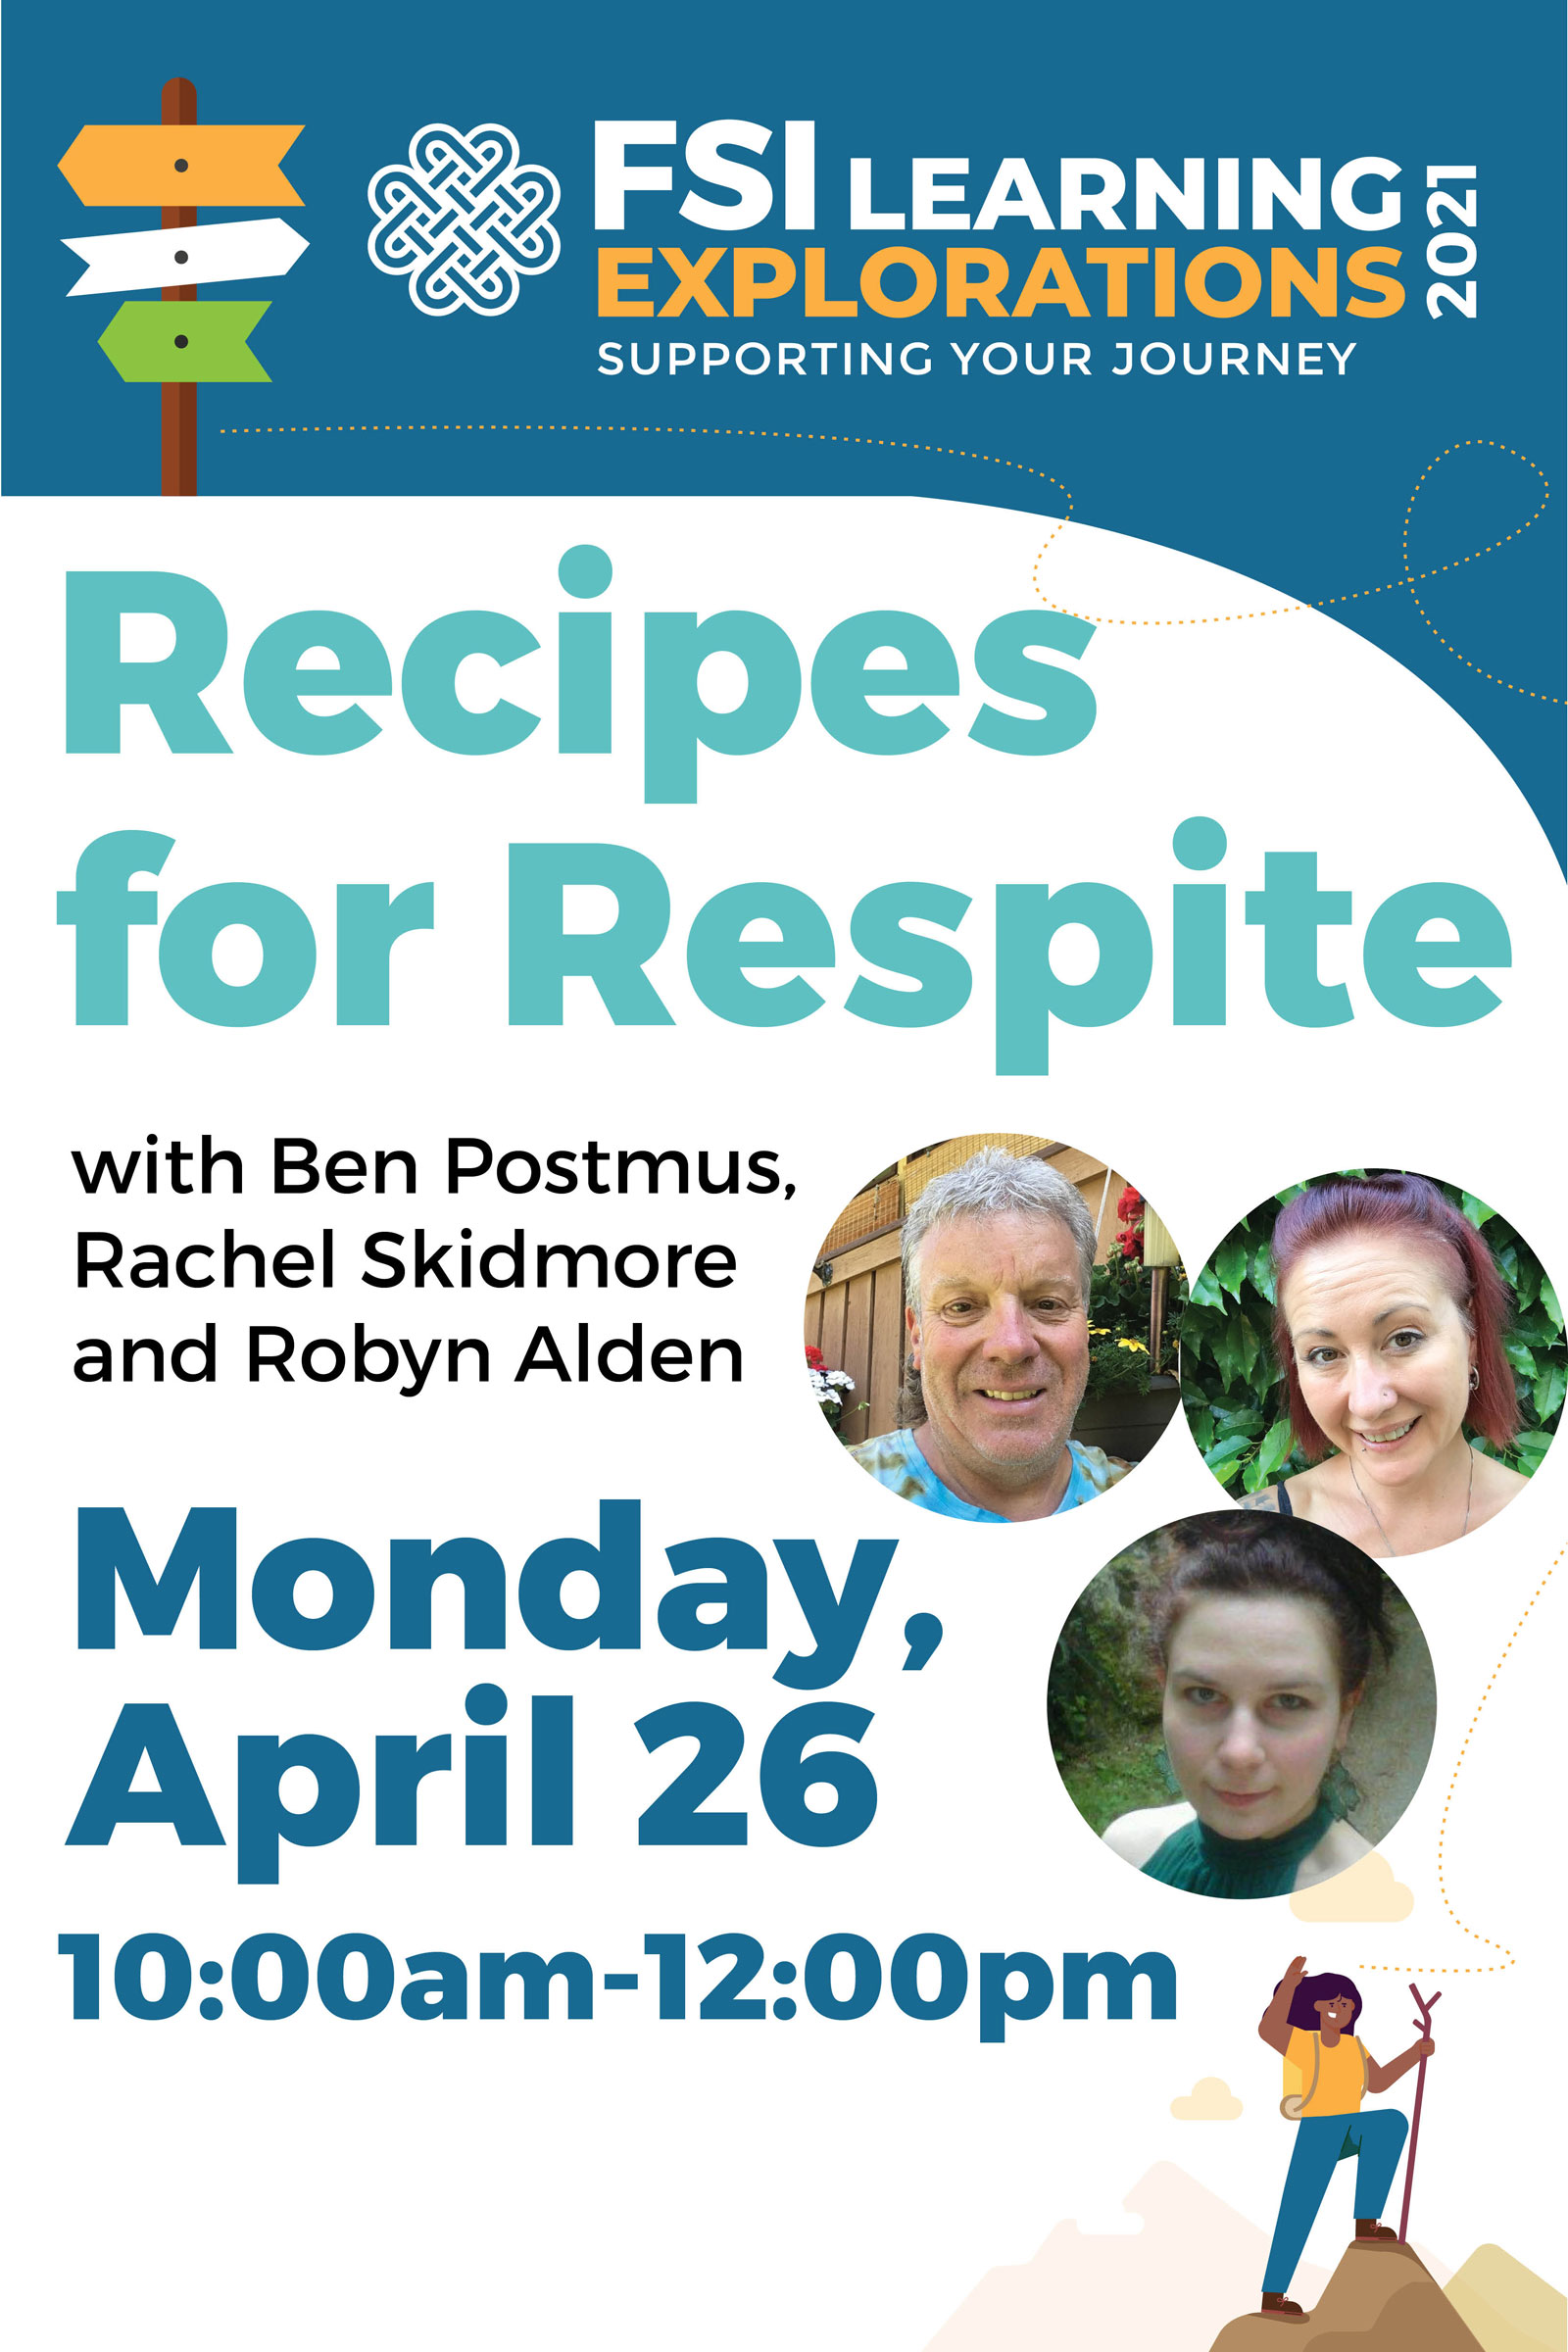 FSI Learning Explorations - Recipes for Respite (AM workshop)